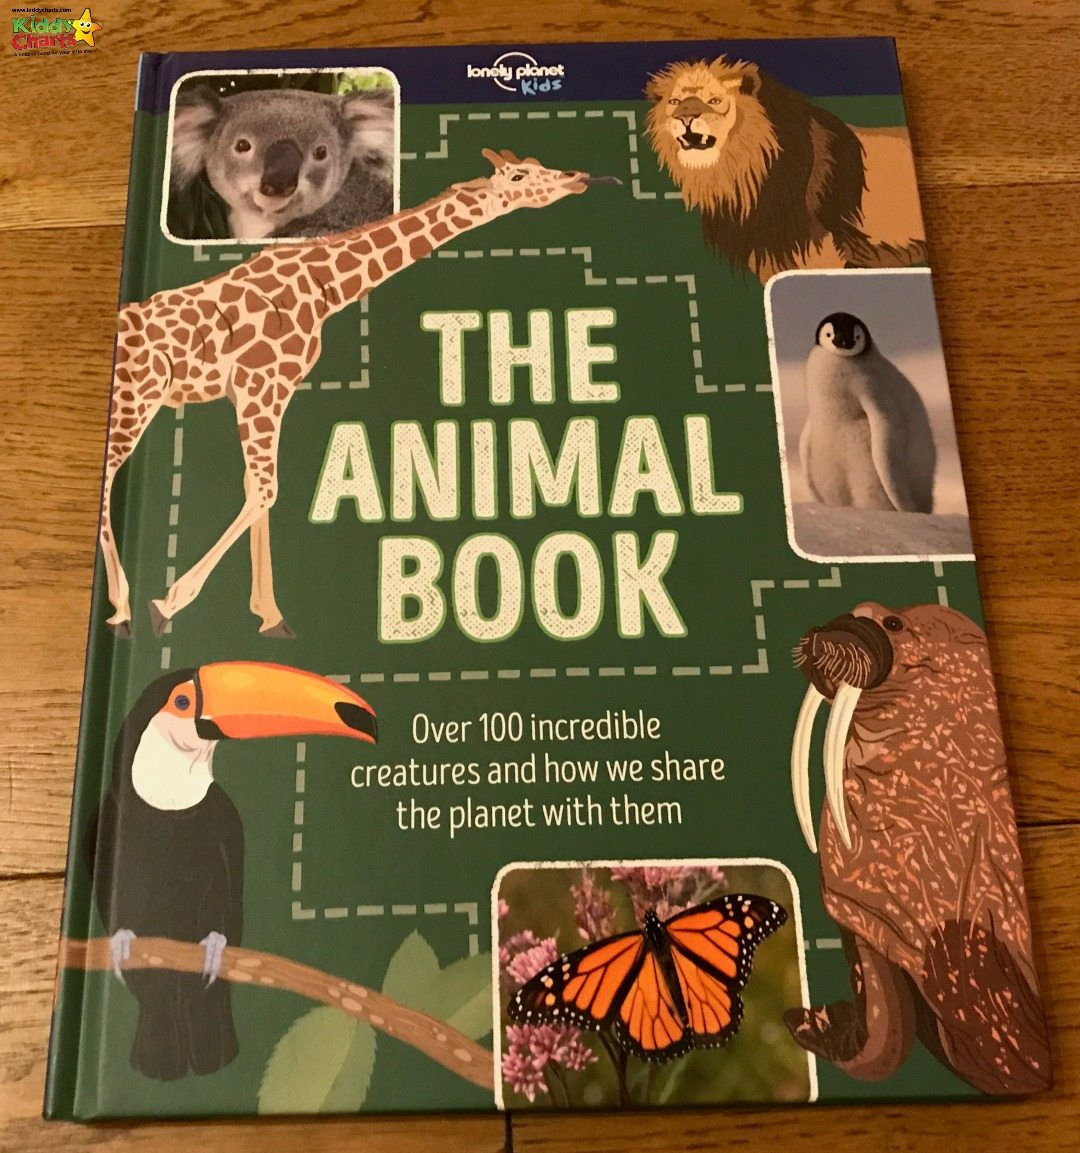 The Animal Book is the first of our Lonely PLanet Kids book reviews - and fantastic resource for your kids, no matter what animals they love!